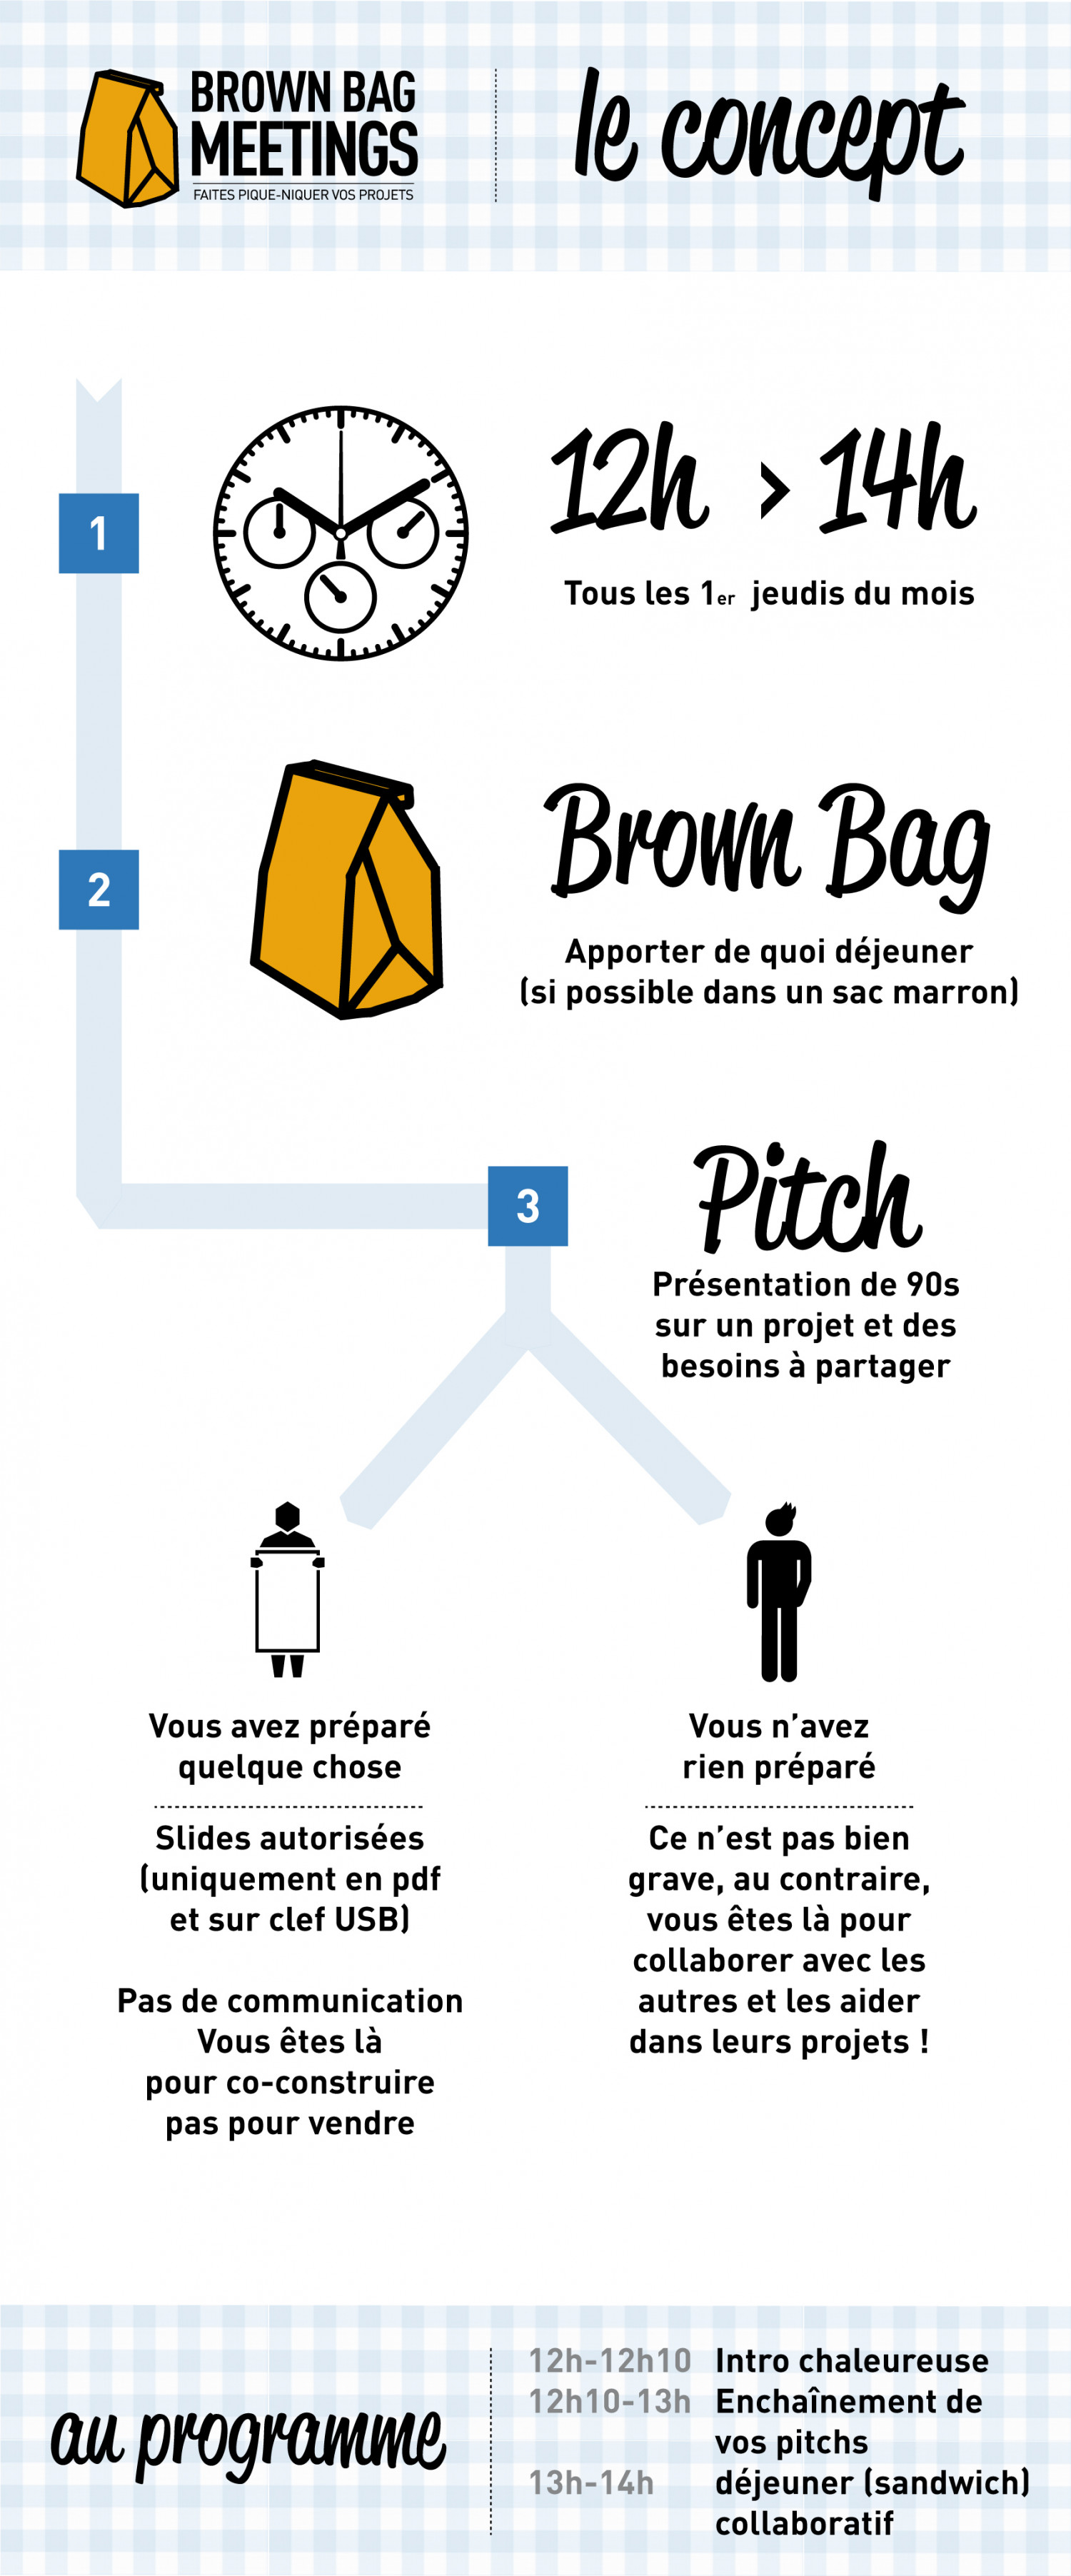 Brown Bag Meetings Infographic